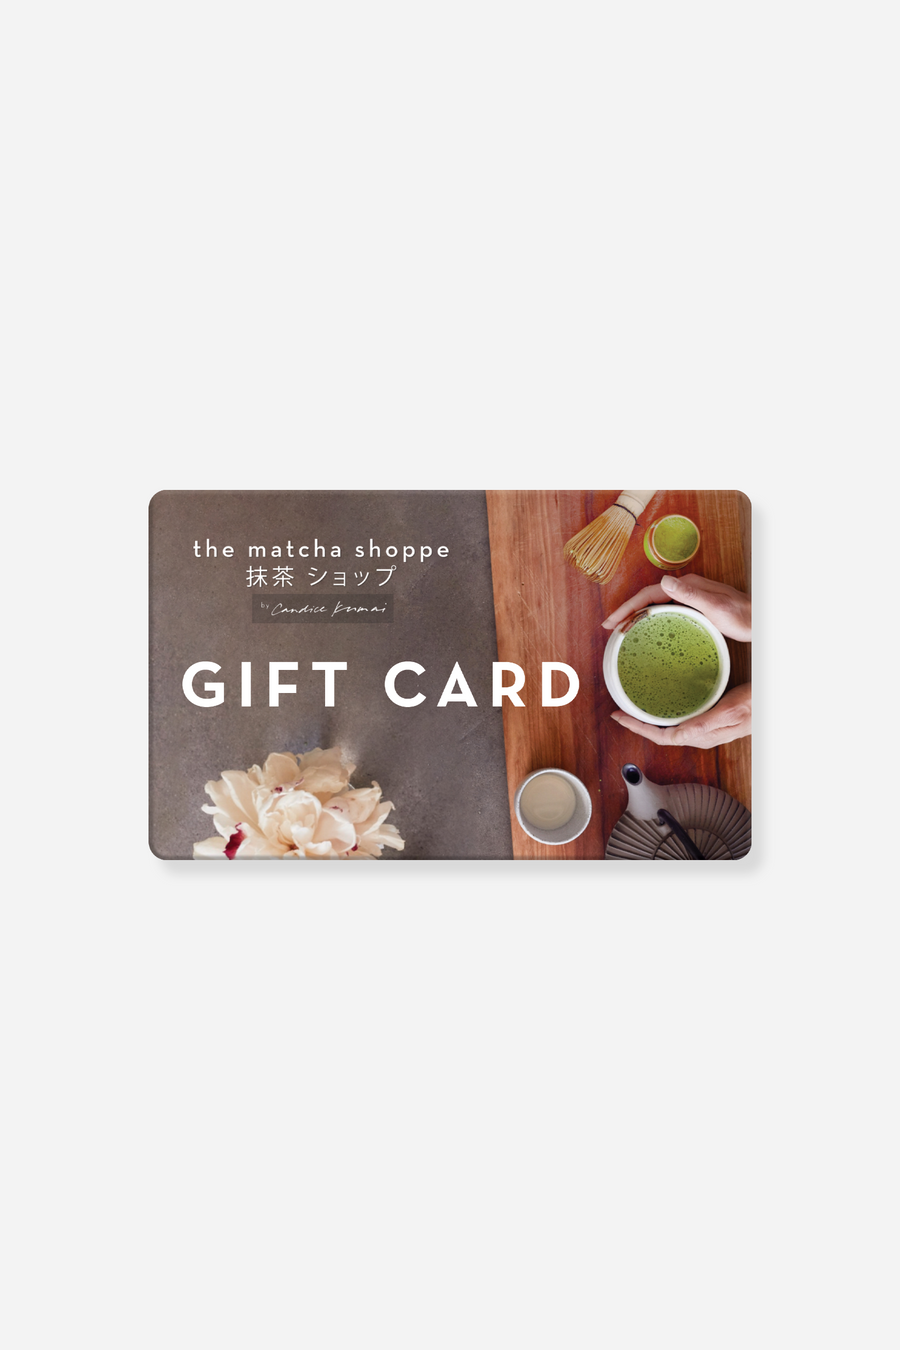 The Matcha Shoppe Gift Card